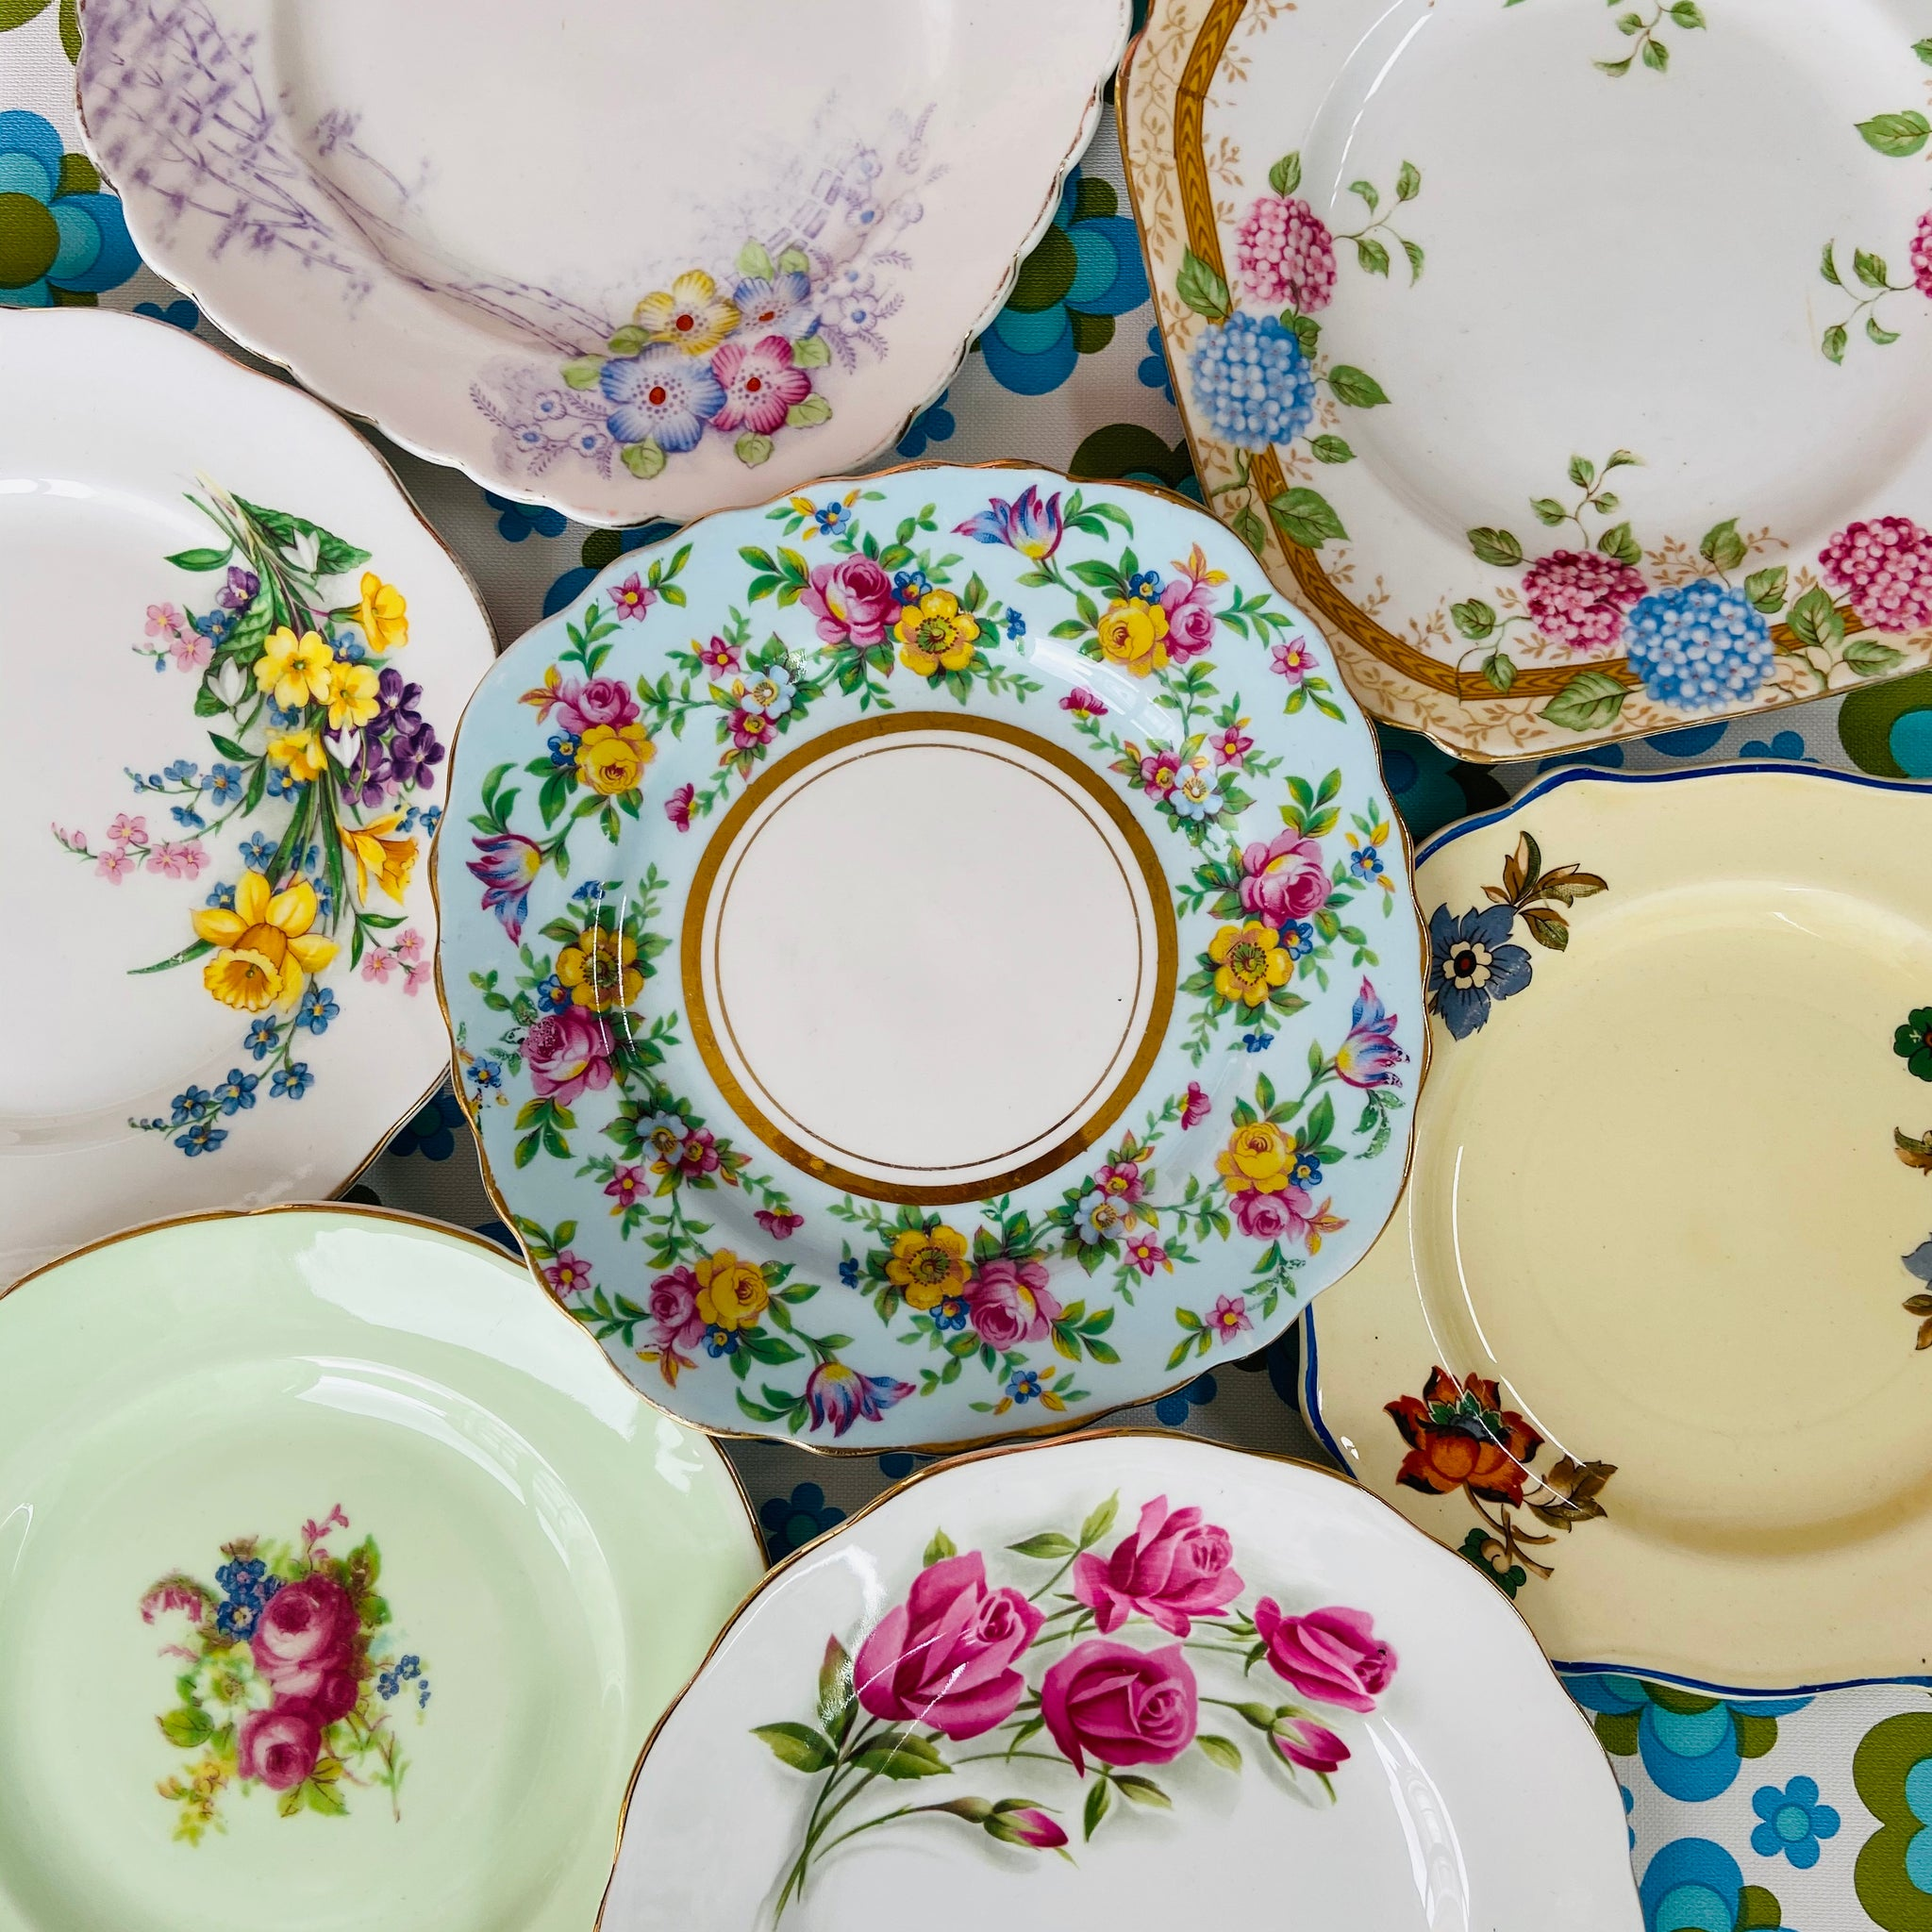 SWEET Mismatched Vintage China Plates FLORAL 50's 60's Shabby Chic HIGH TEA